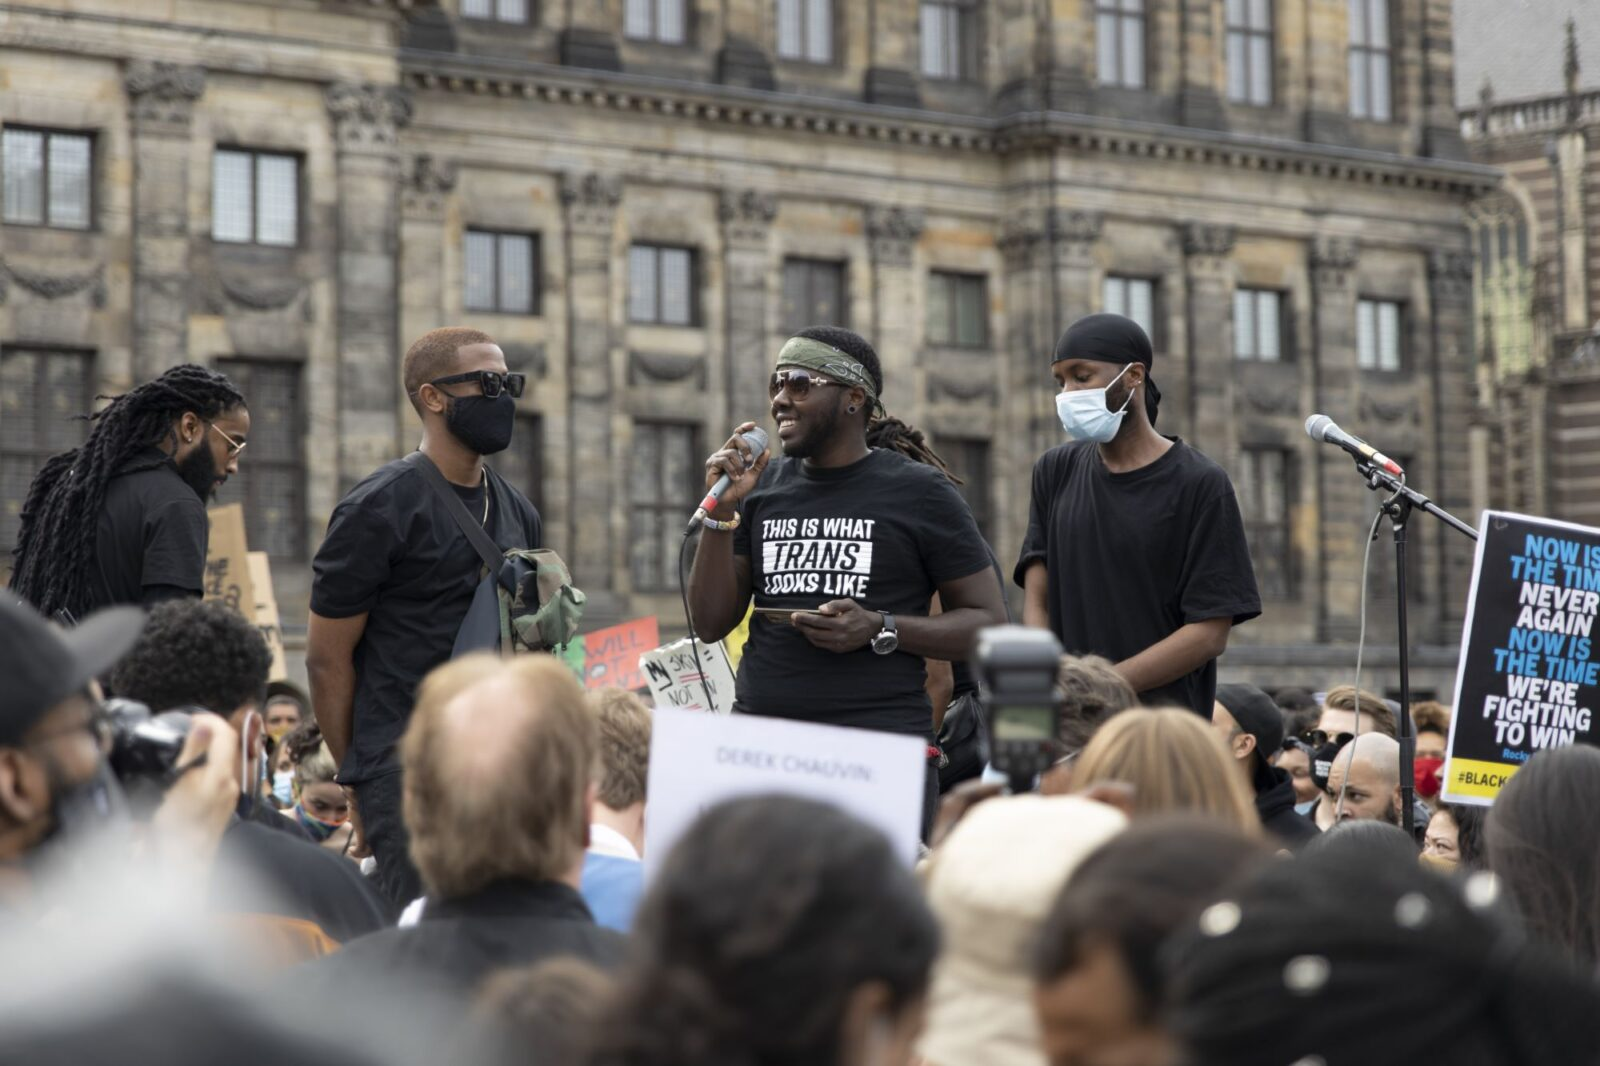 Speeches were made on stage for the entire two hours of the protest.